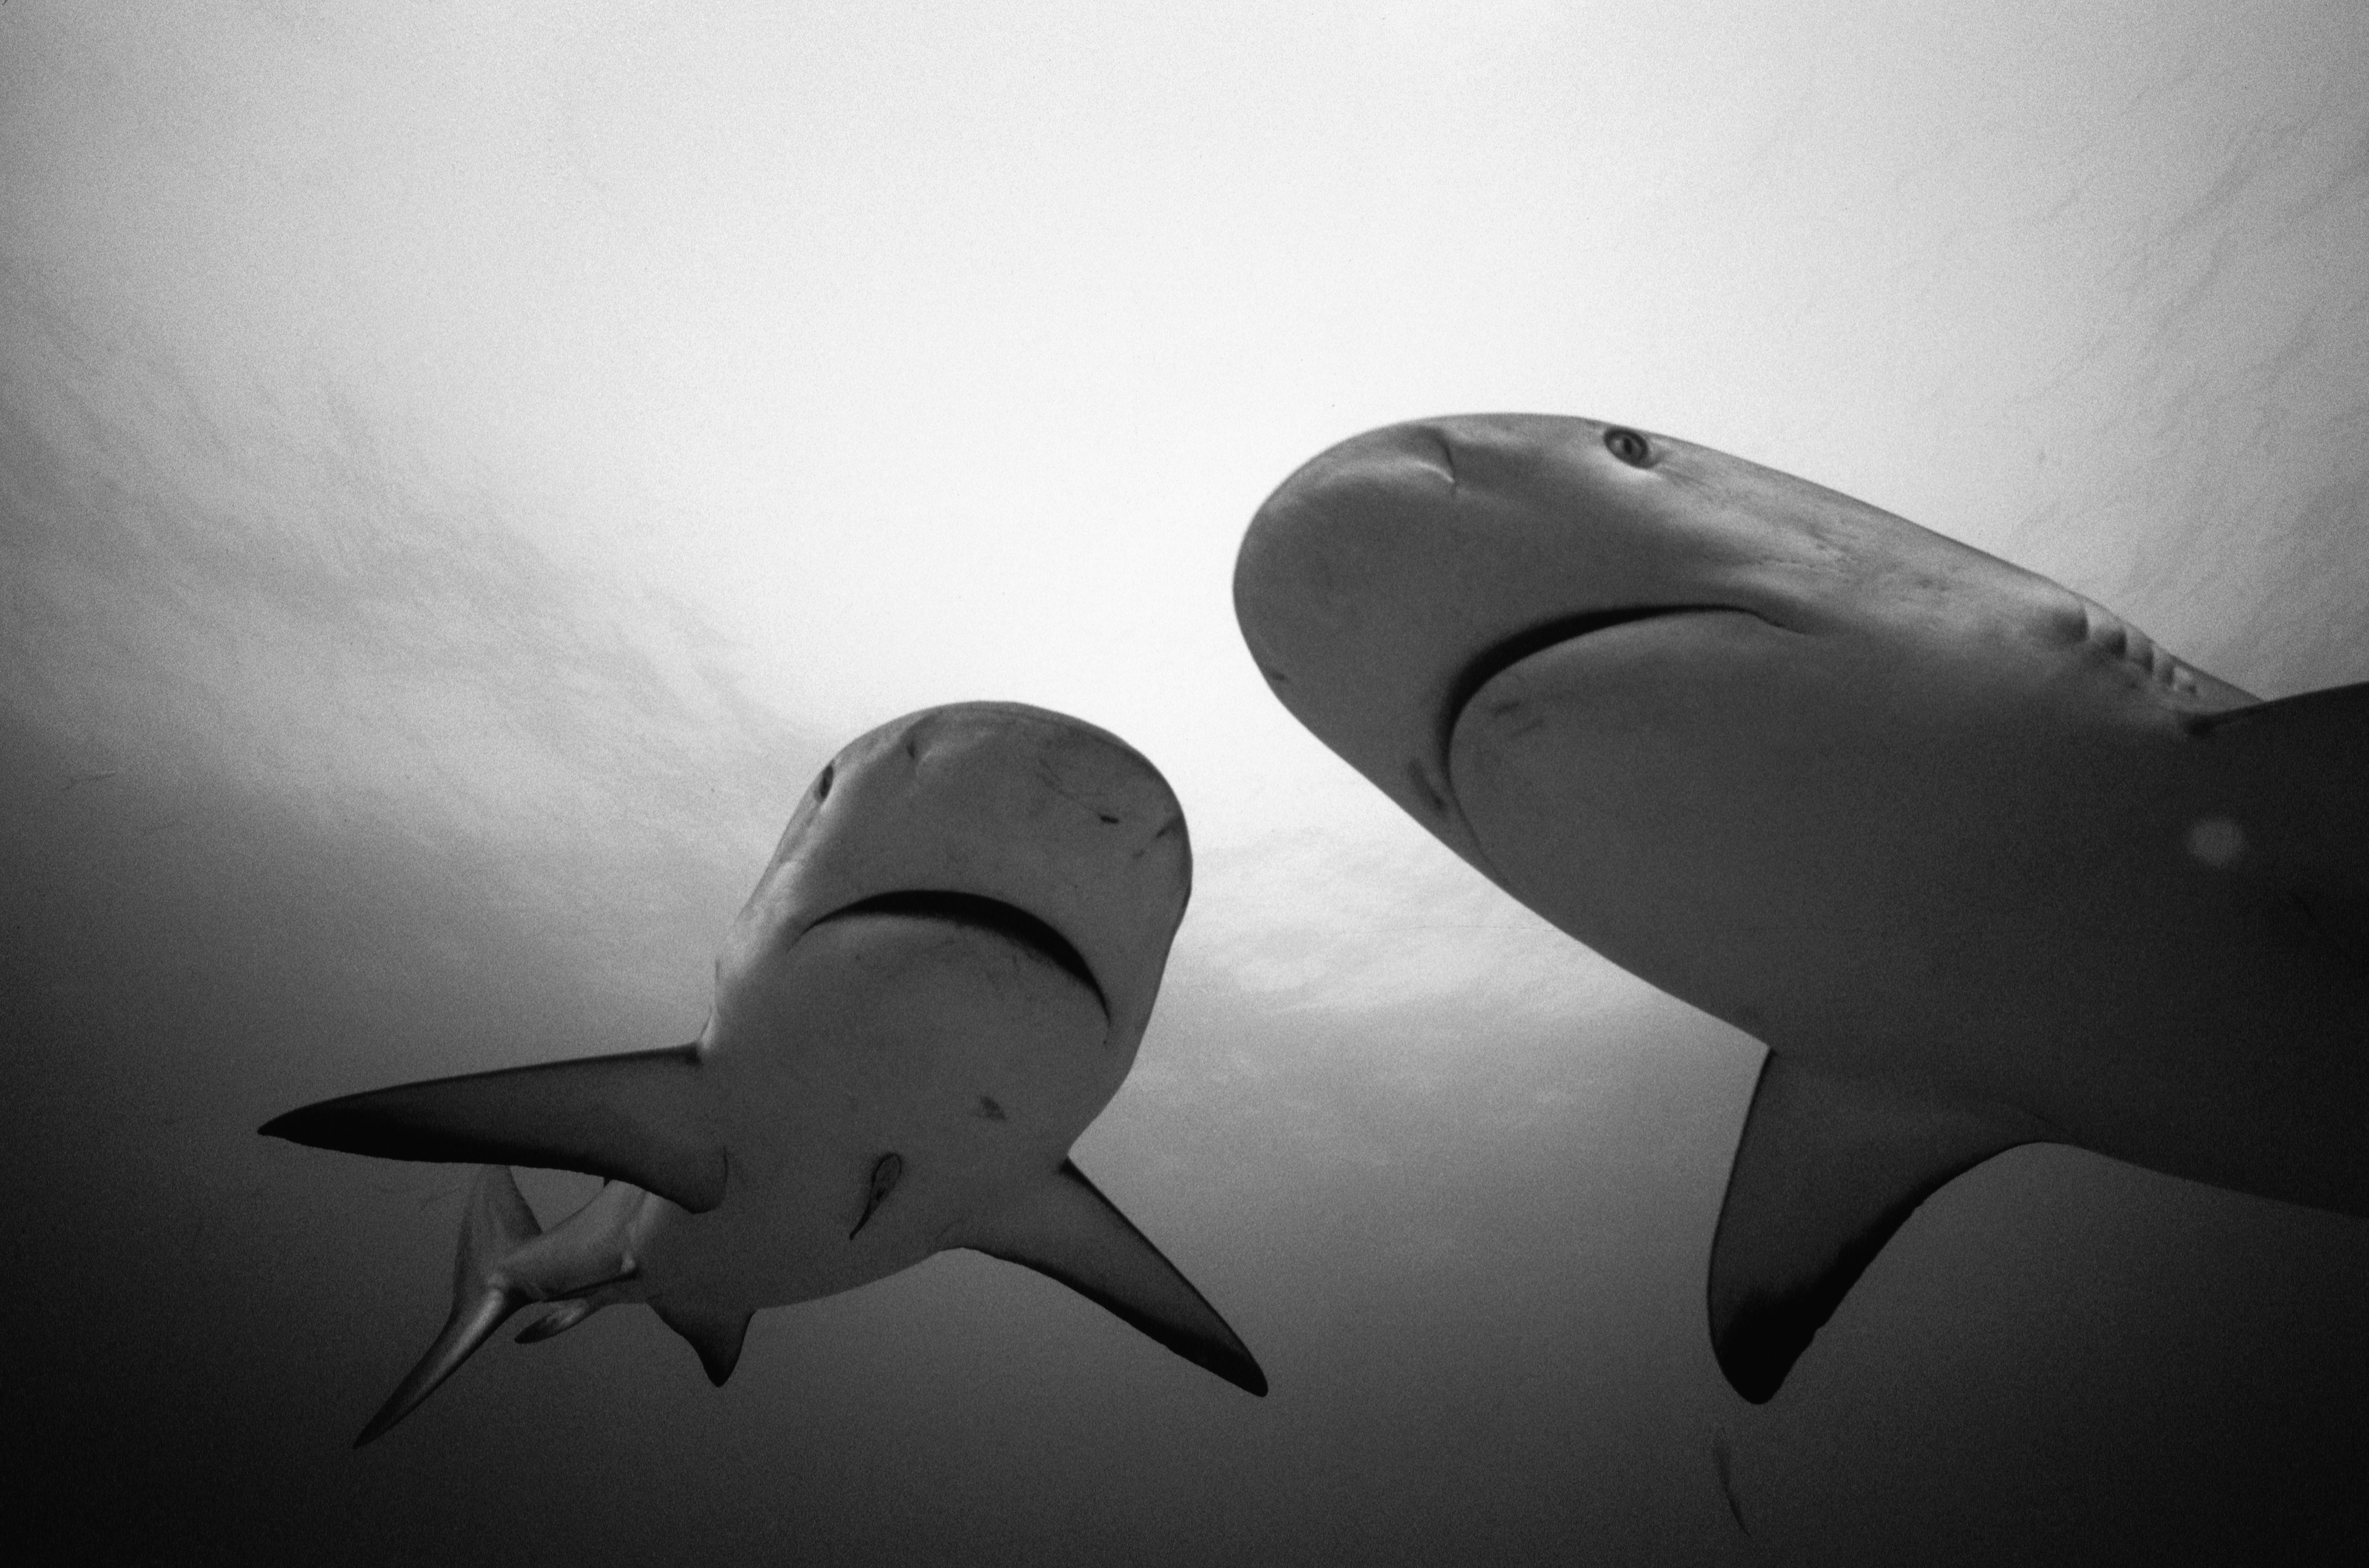 152217 download wallpaper Animals, Couple, Pair, Water, Bw, Chb, Sharks screensavers and pictures for free